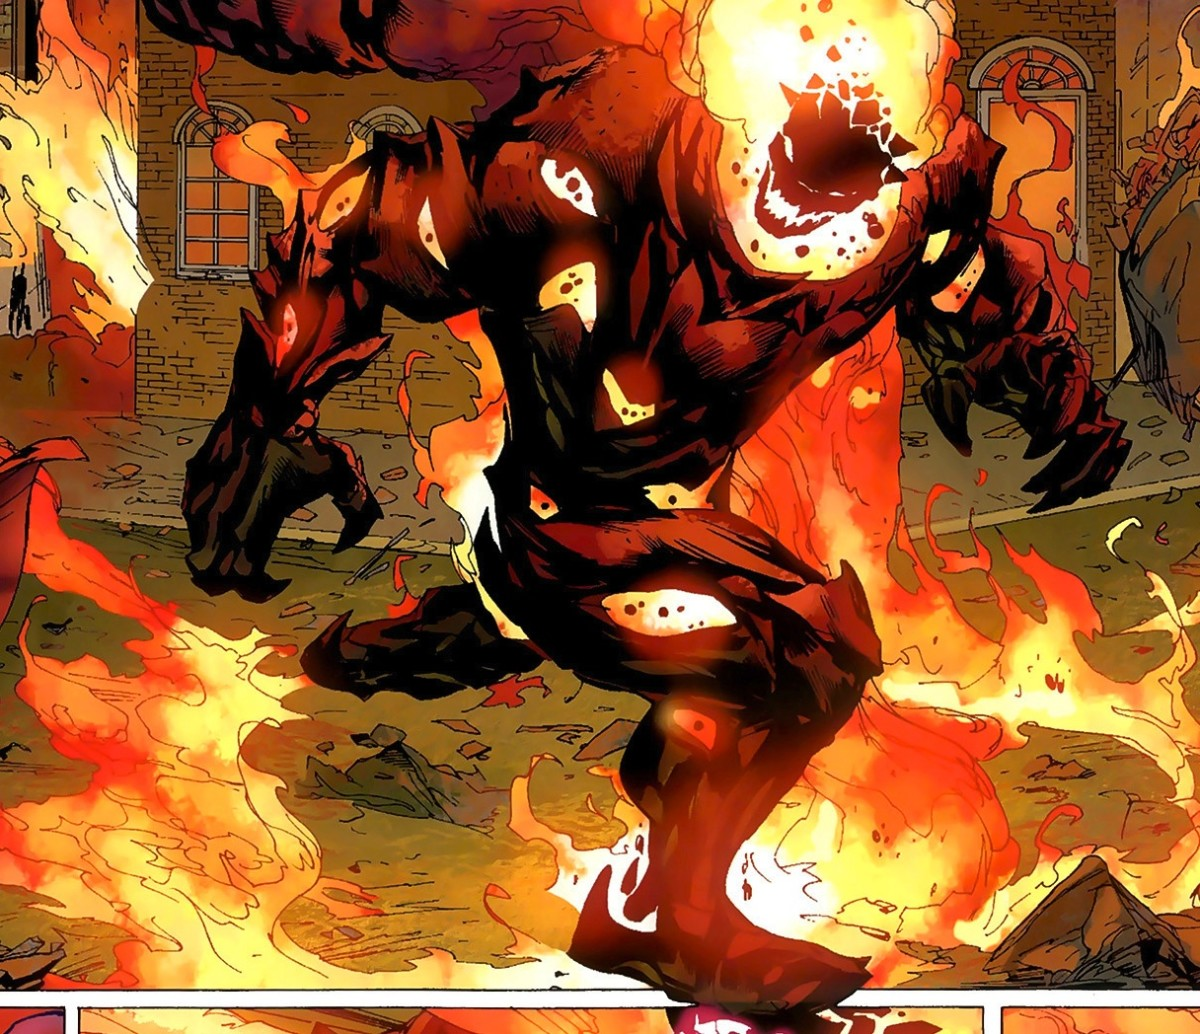 Dormammu - Doctor Strange's nemesis from the Dark Dimension